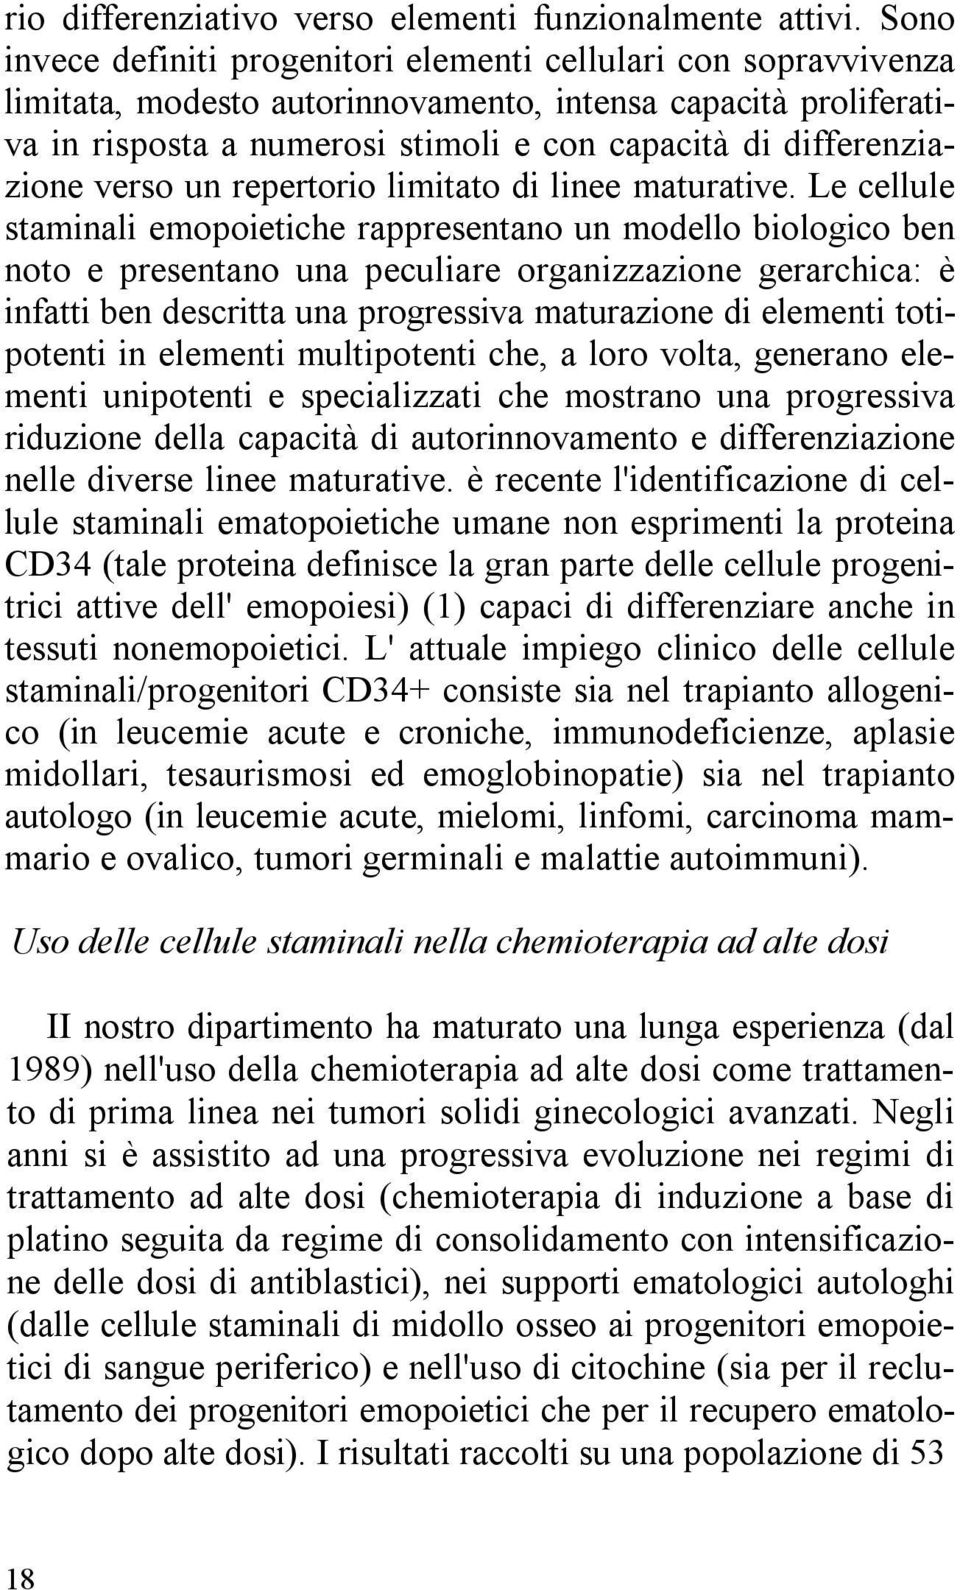 differenziazione verso un repertorio limitato di linee maturative.